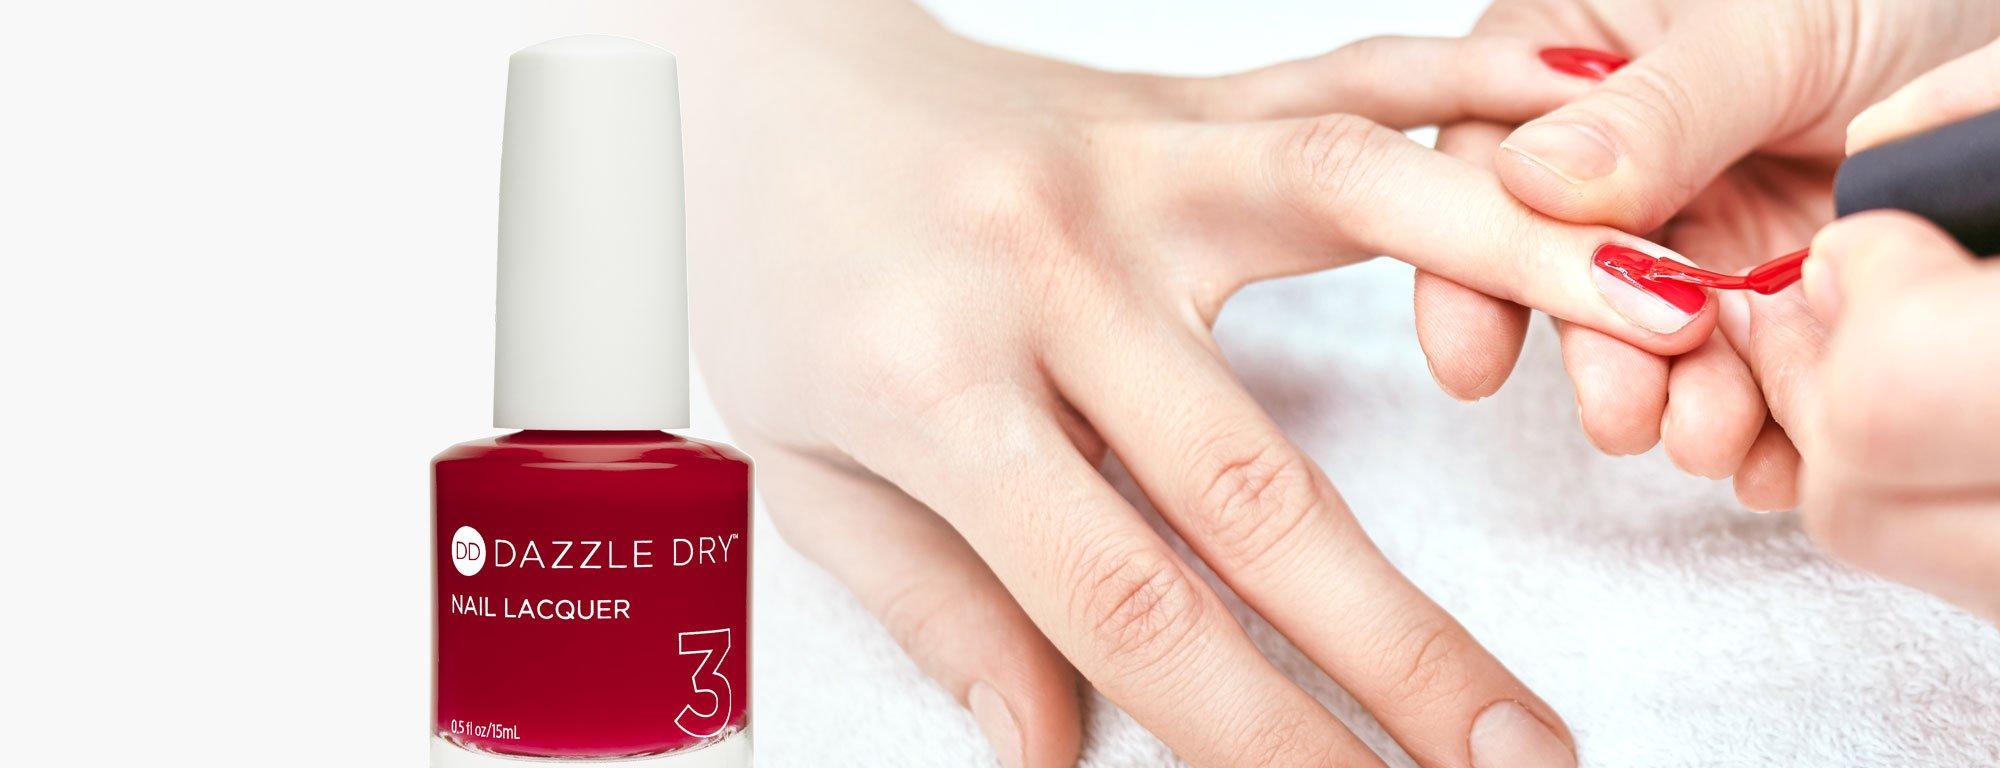 Scheduling A Mani Try Dazzle Dry Milagro Salon Spa